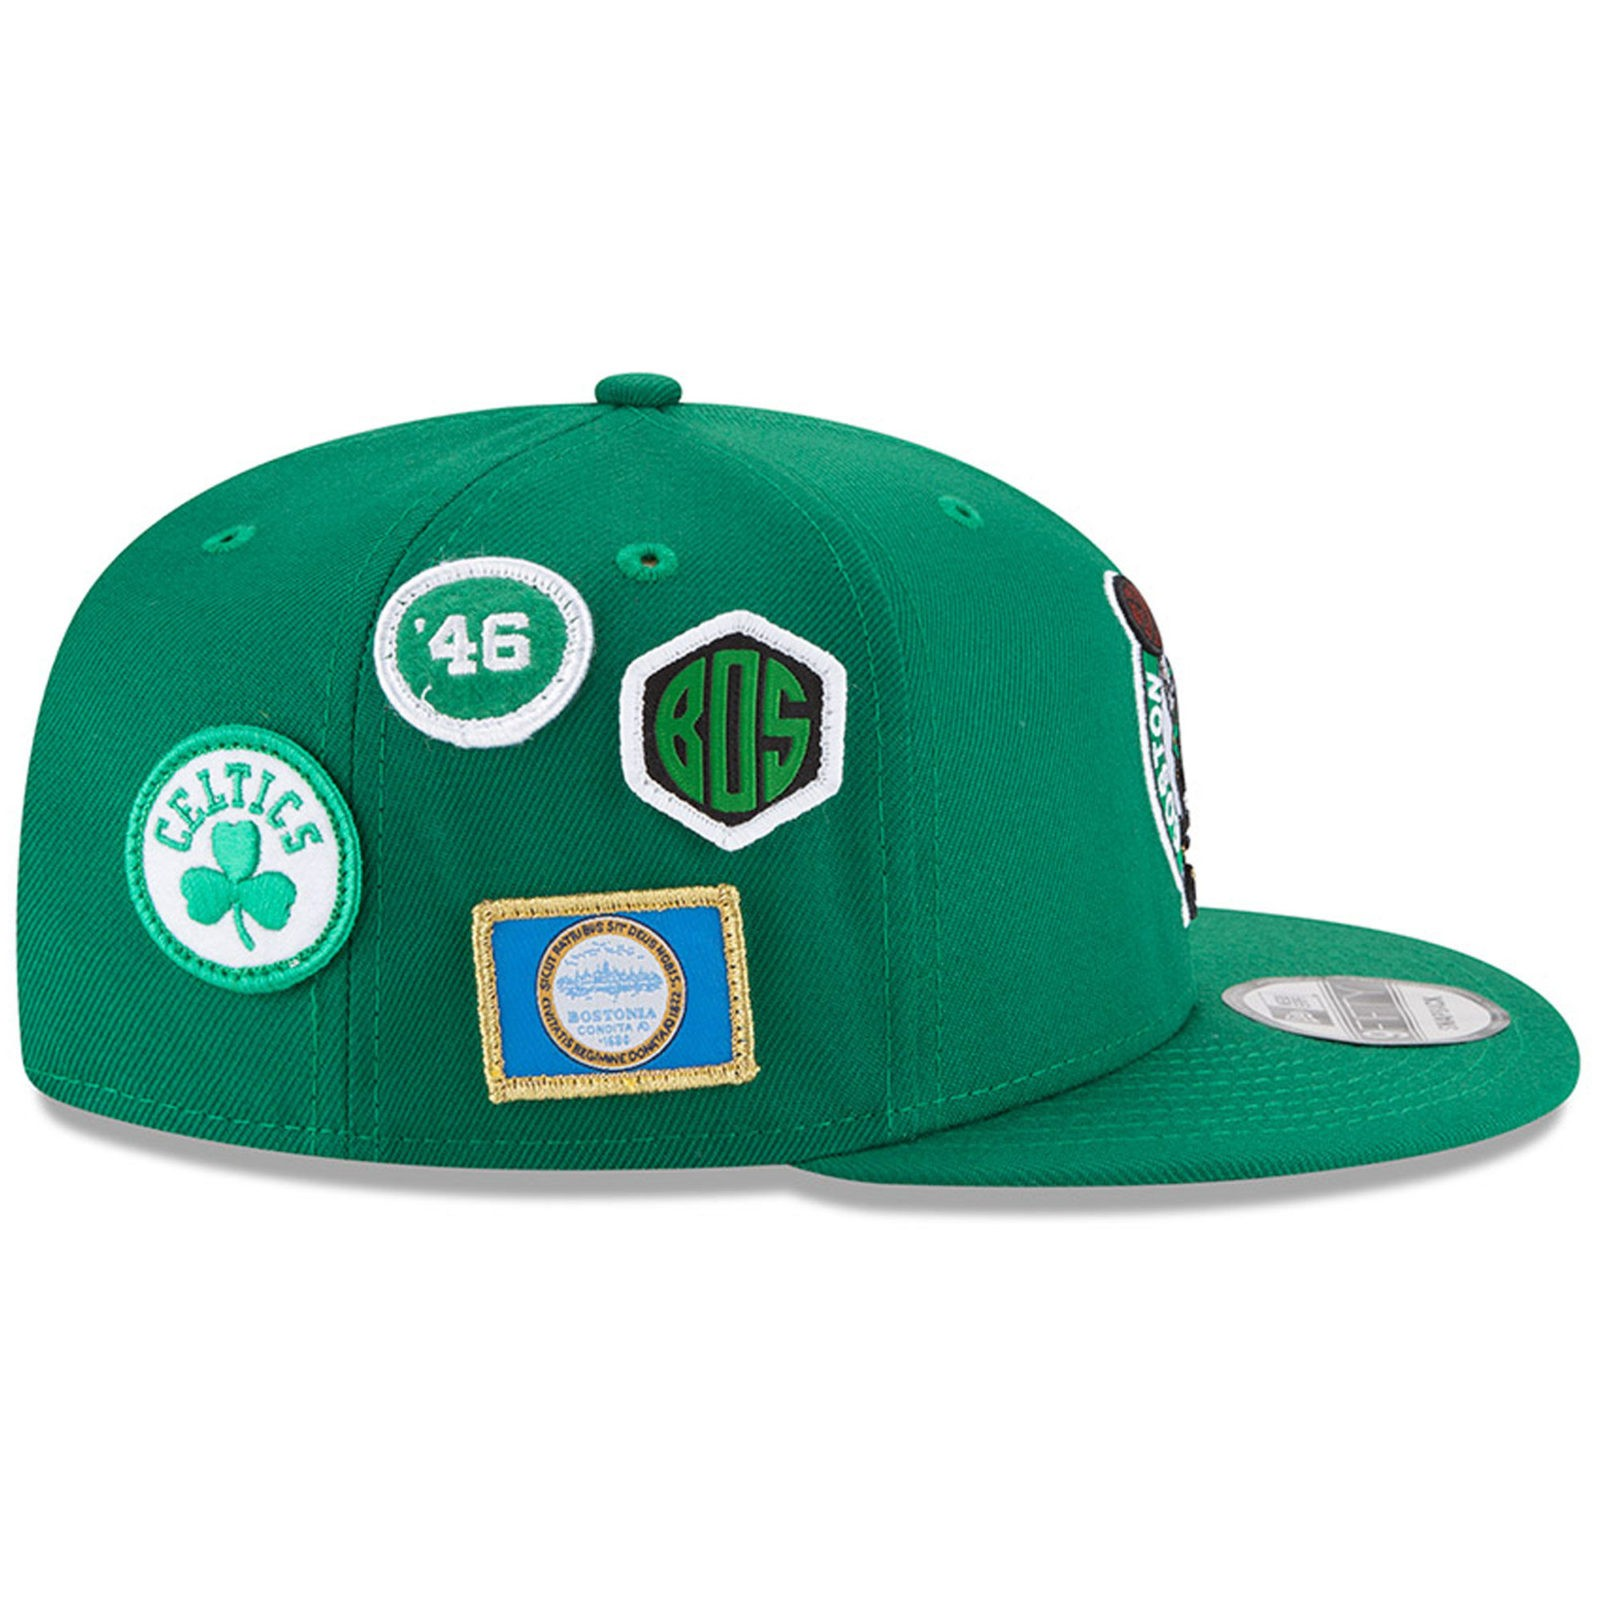 19f620715e8 Boston Celtics New Era 2018 Draft 9FIFTY Snapback Adjustable Hat ...